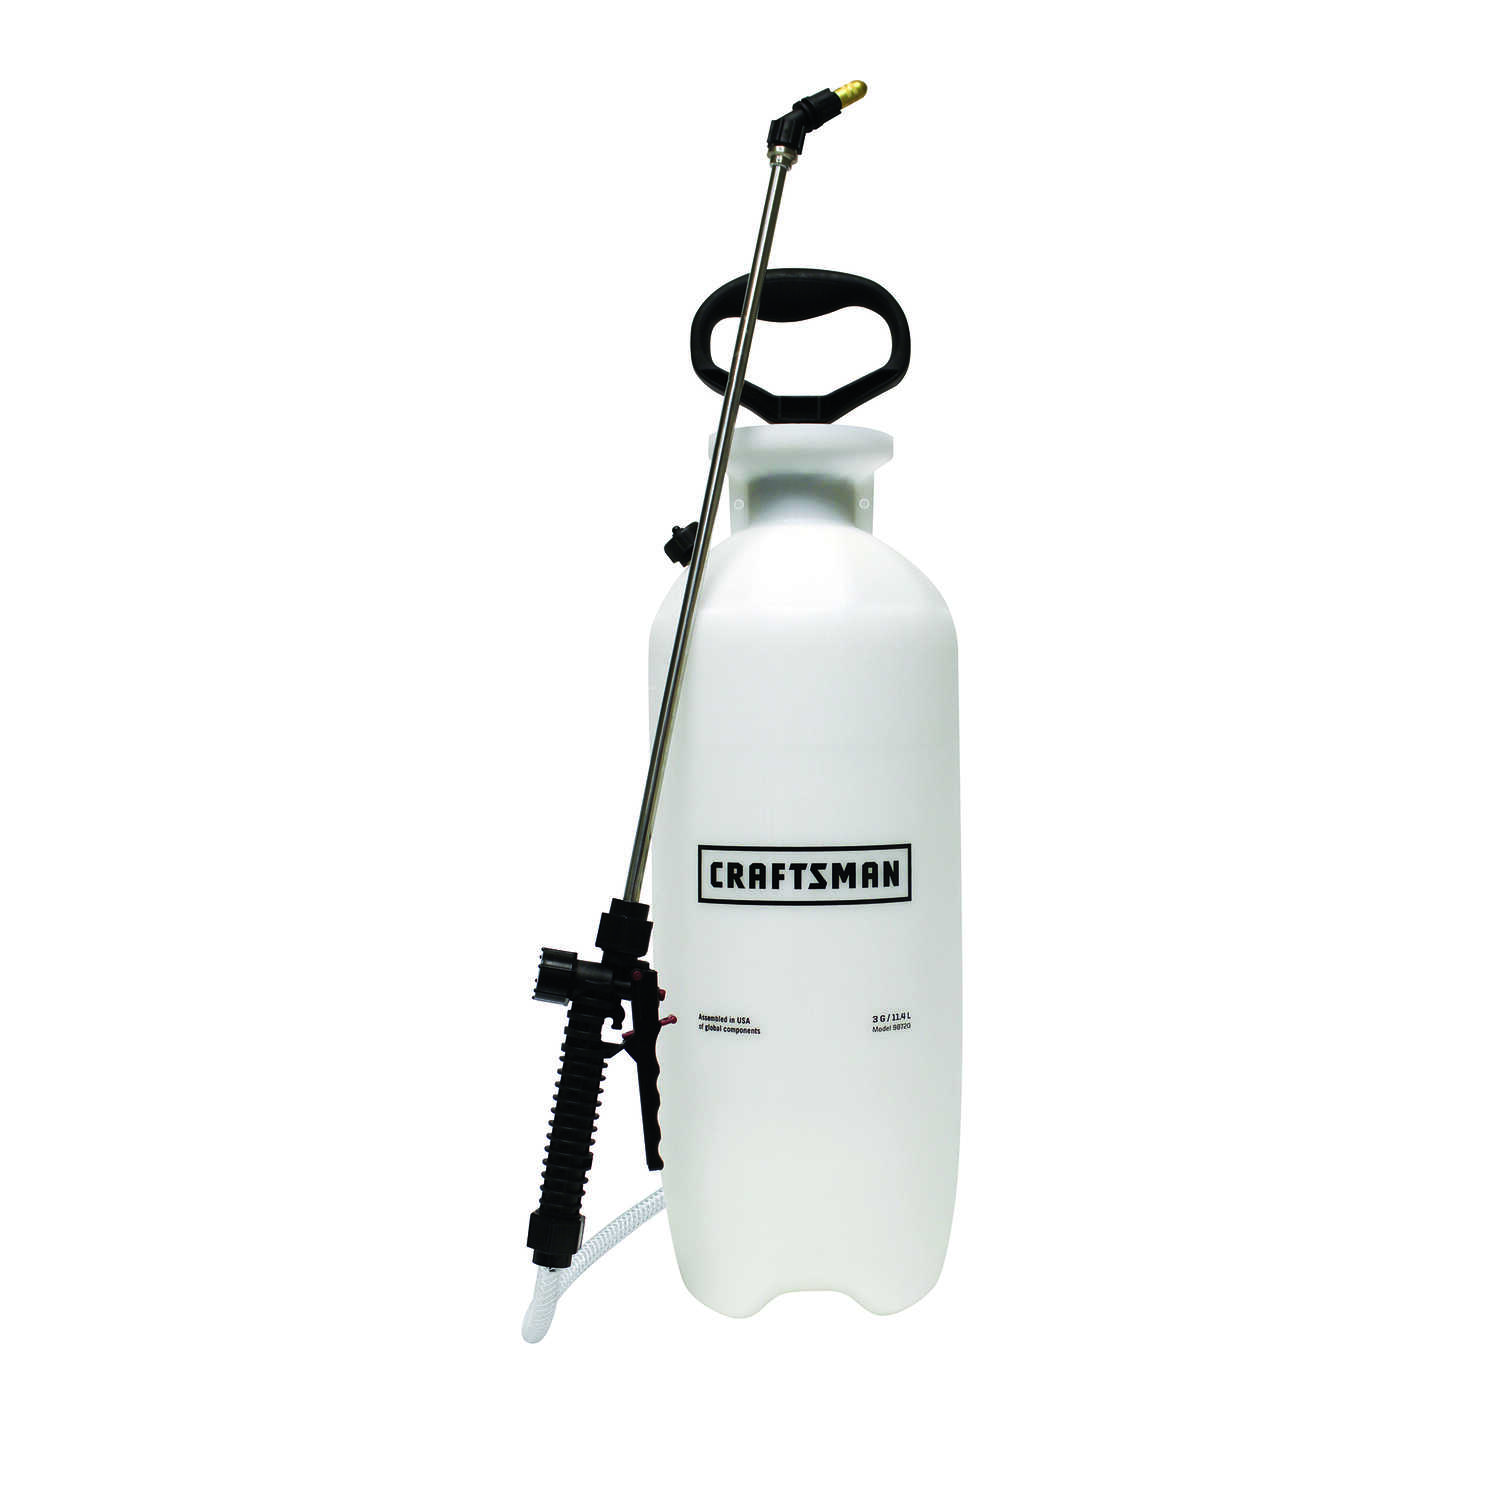 Craftsman  Adjustable Spray Tip Tank Sprayer  3 gal.